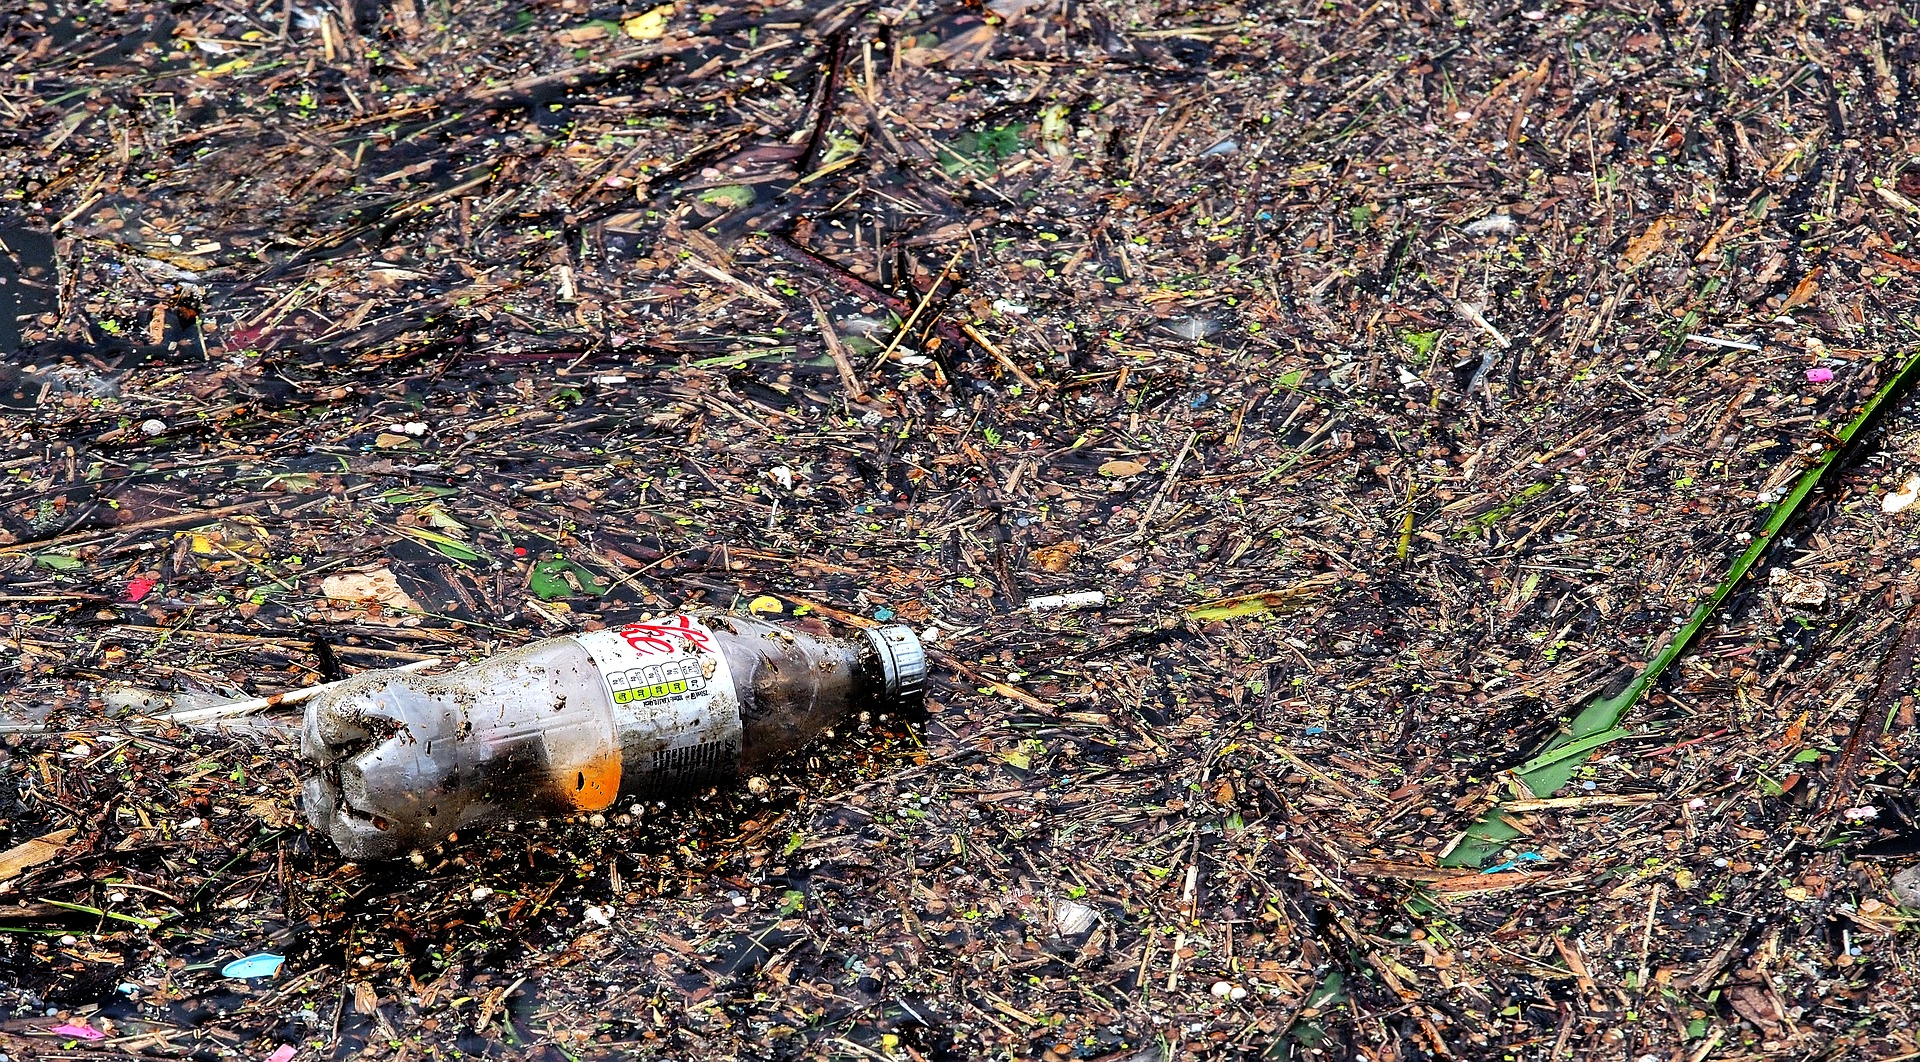 coke bottle in ocean plastic pollution